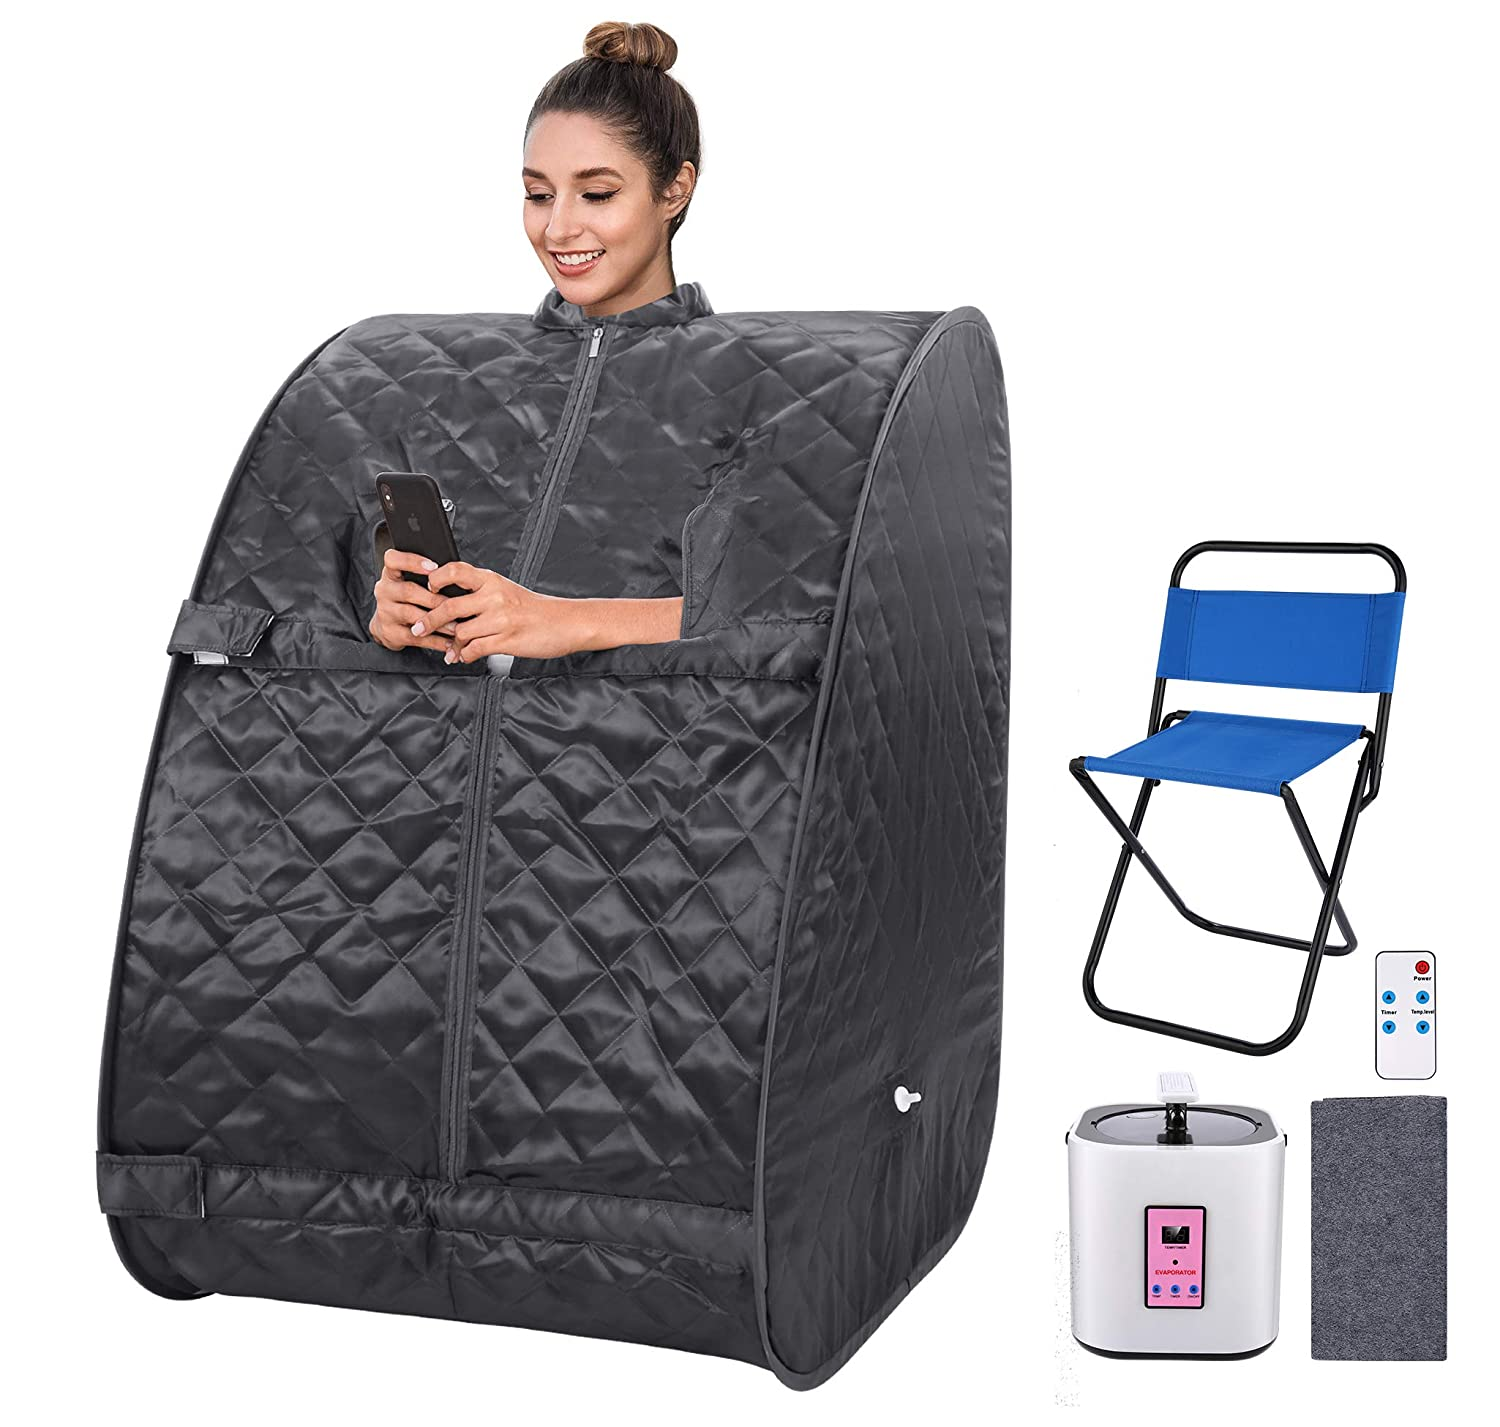 OppsDecor Portable Steam Sauna Spa, 2L Personal Therapeutic Sauna for Weight Loss Detox Relaxation at Home,One Person Sauna with Remote Control,Foldable Chair,Timer US Plug Gray